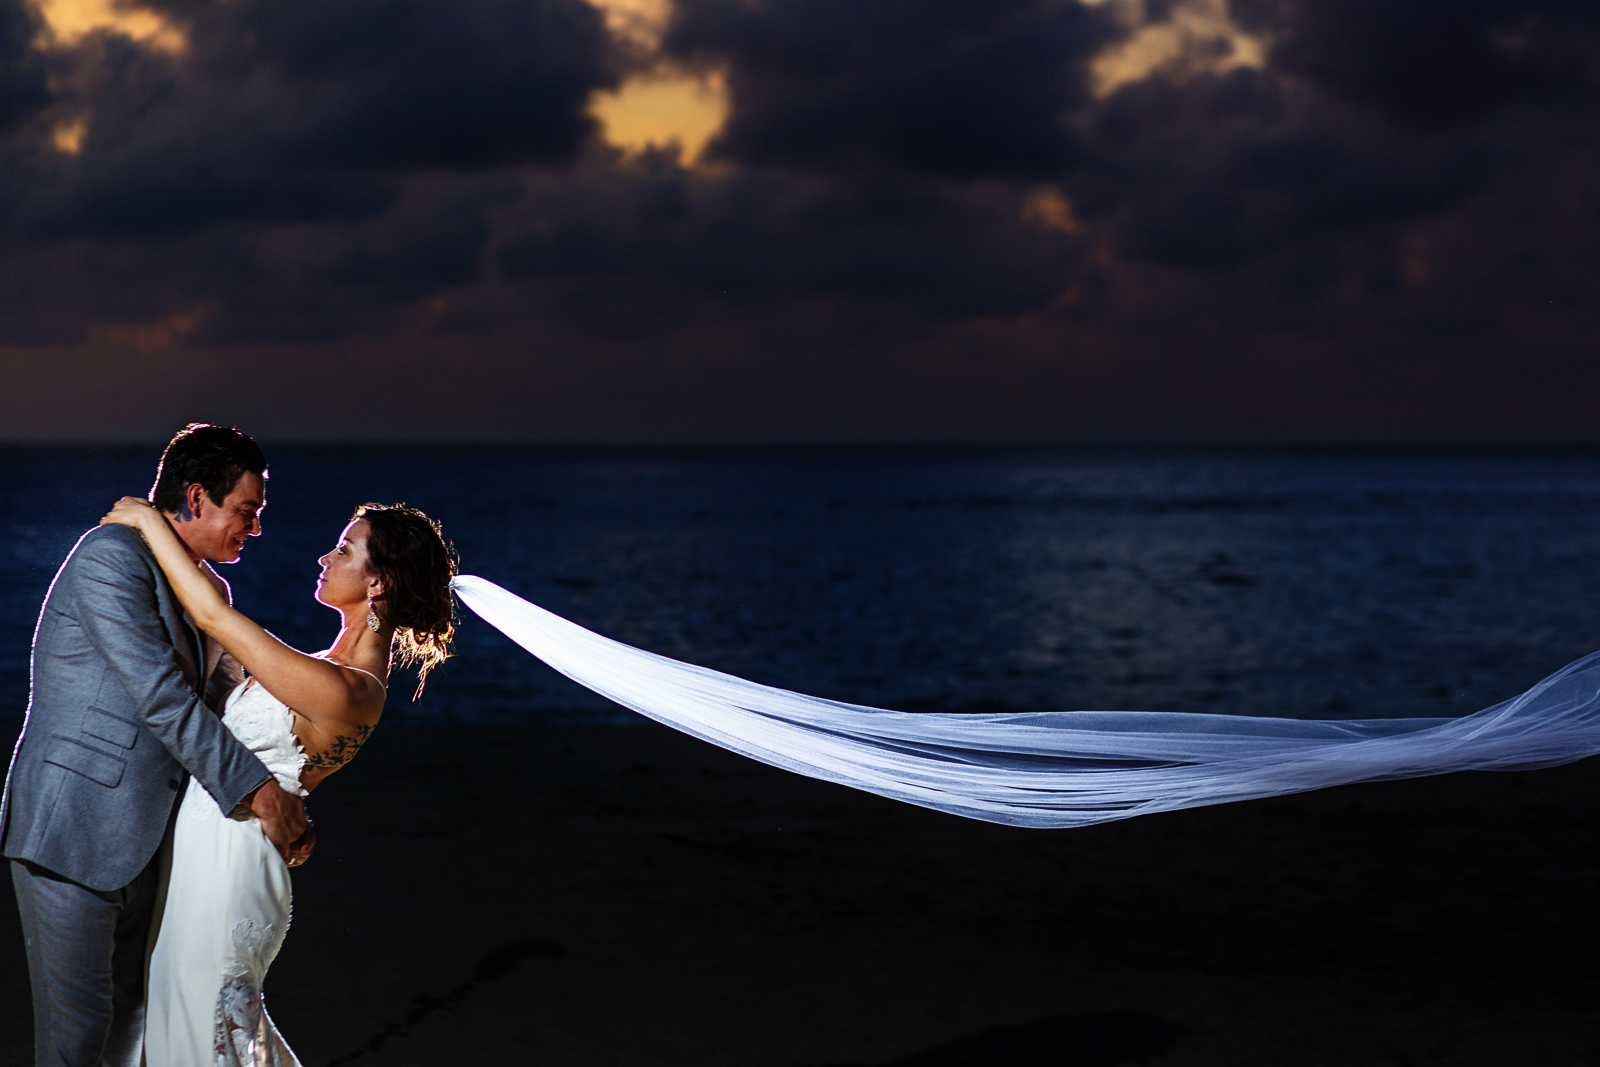 Bride and groom standing on the beach with the sunset in the background and the bride's veil floating in the air.